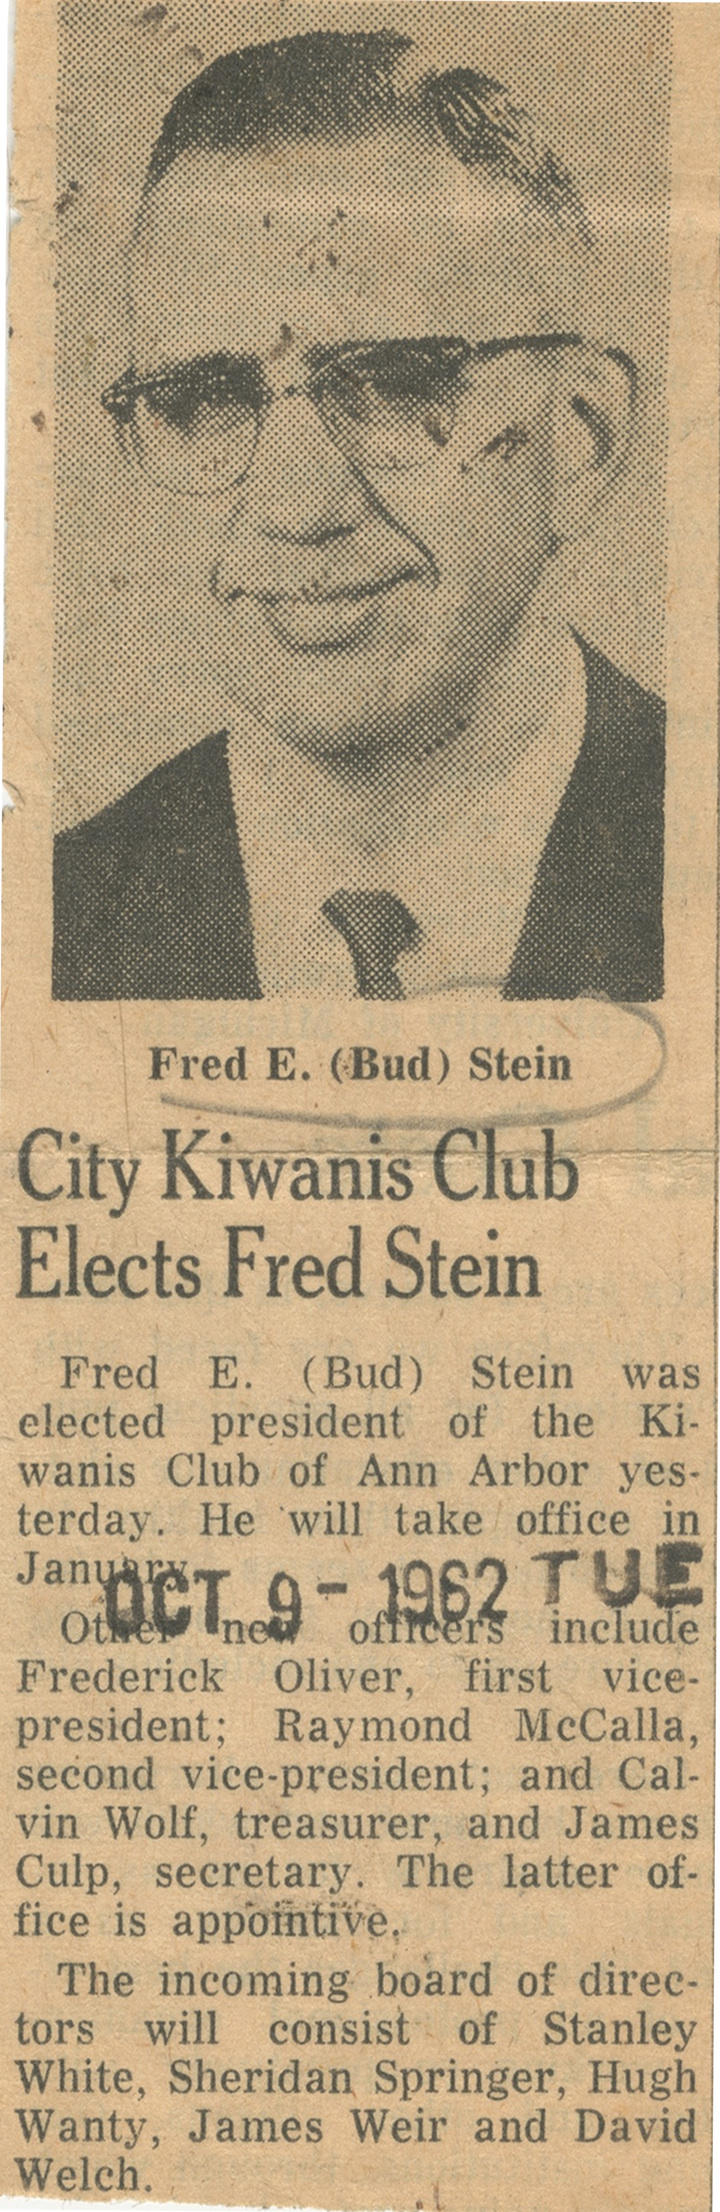 City Kiwanis Club Elects Fred Stein image